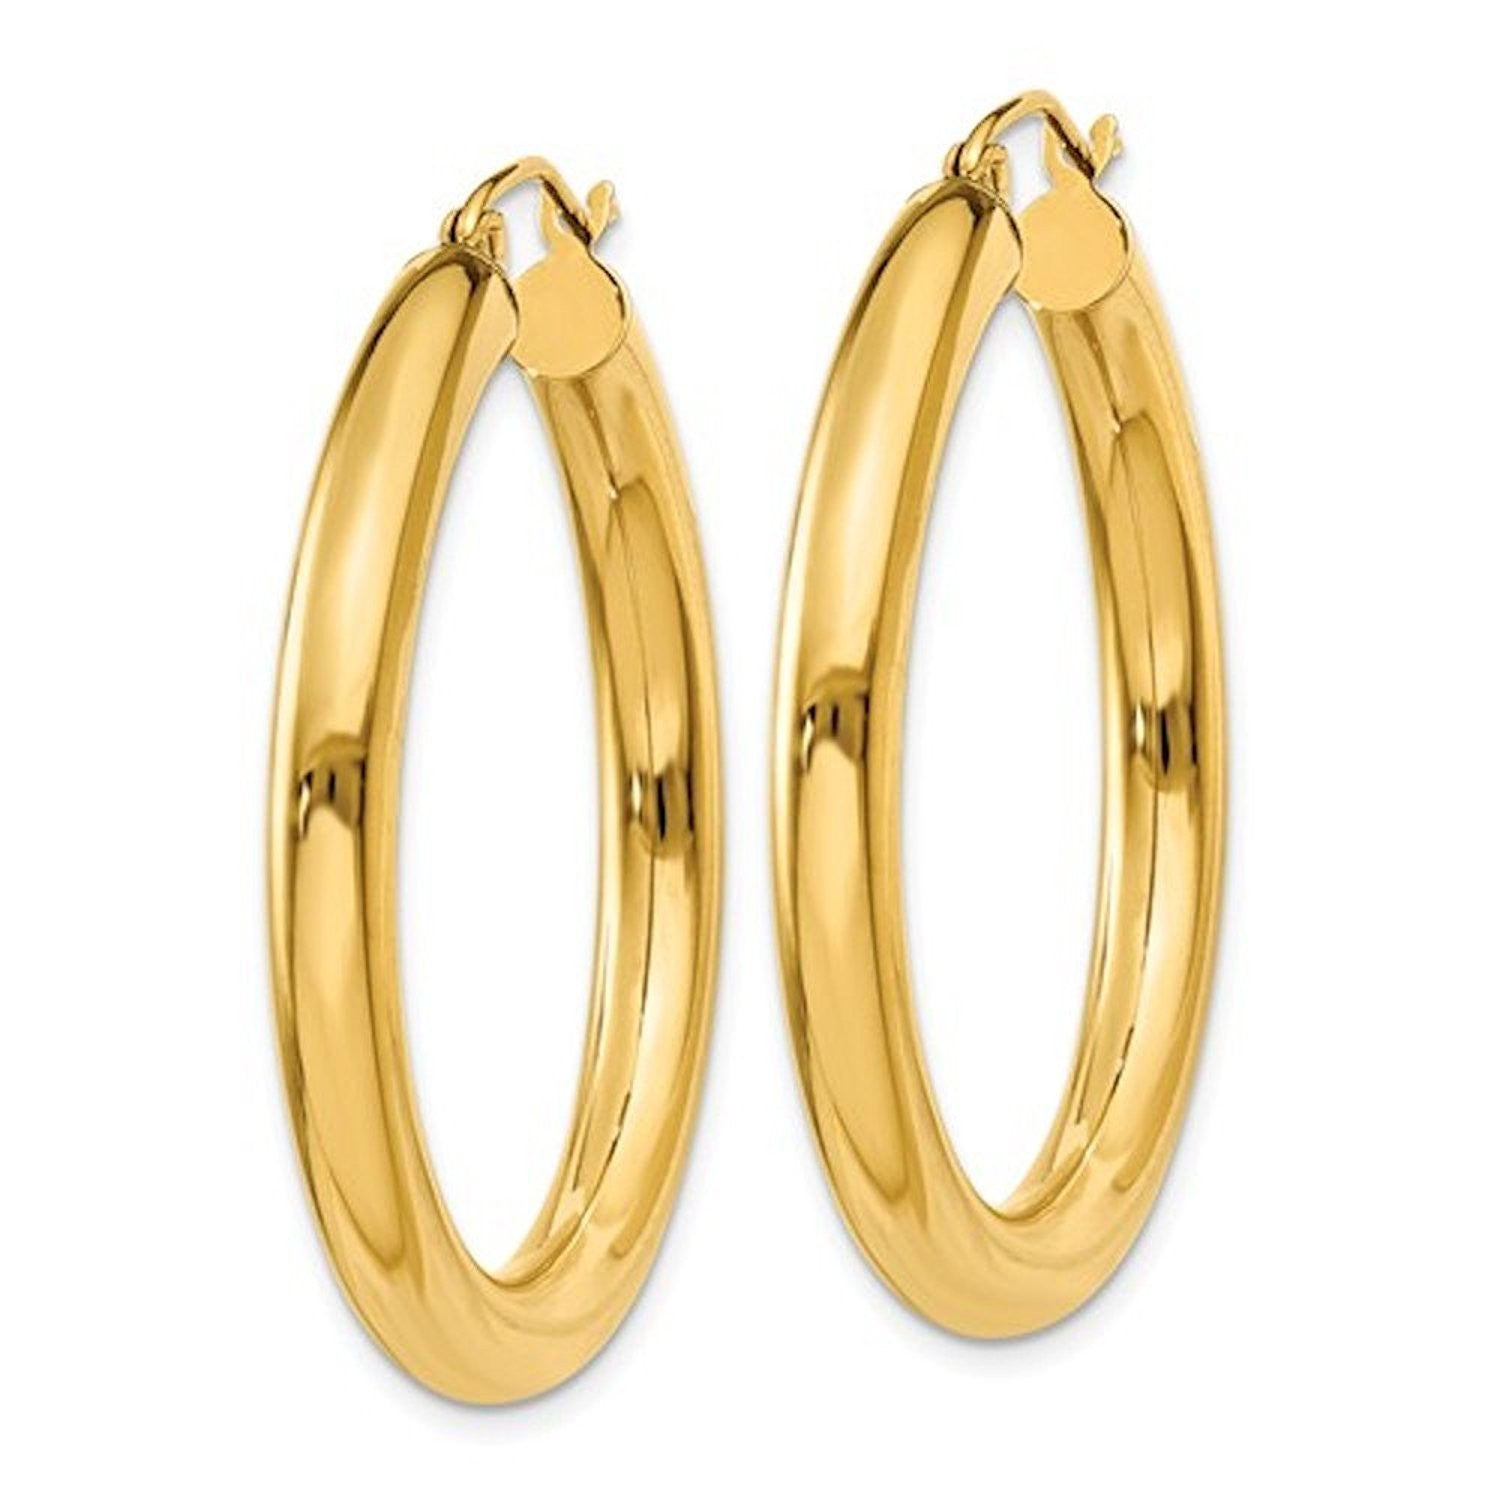 14K Yellow Gold Classic Round Hoop Earrings 34mmx4mm